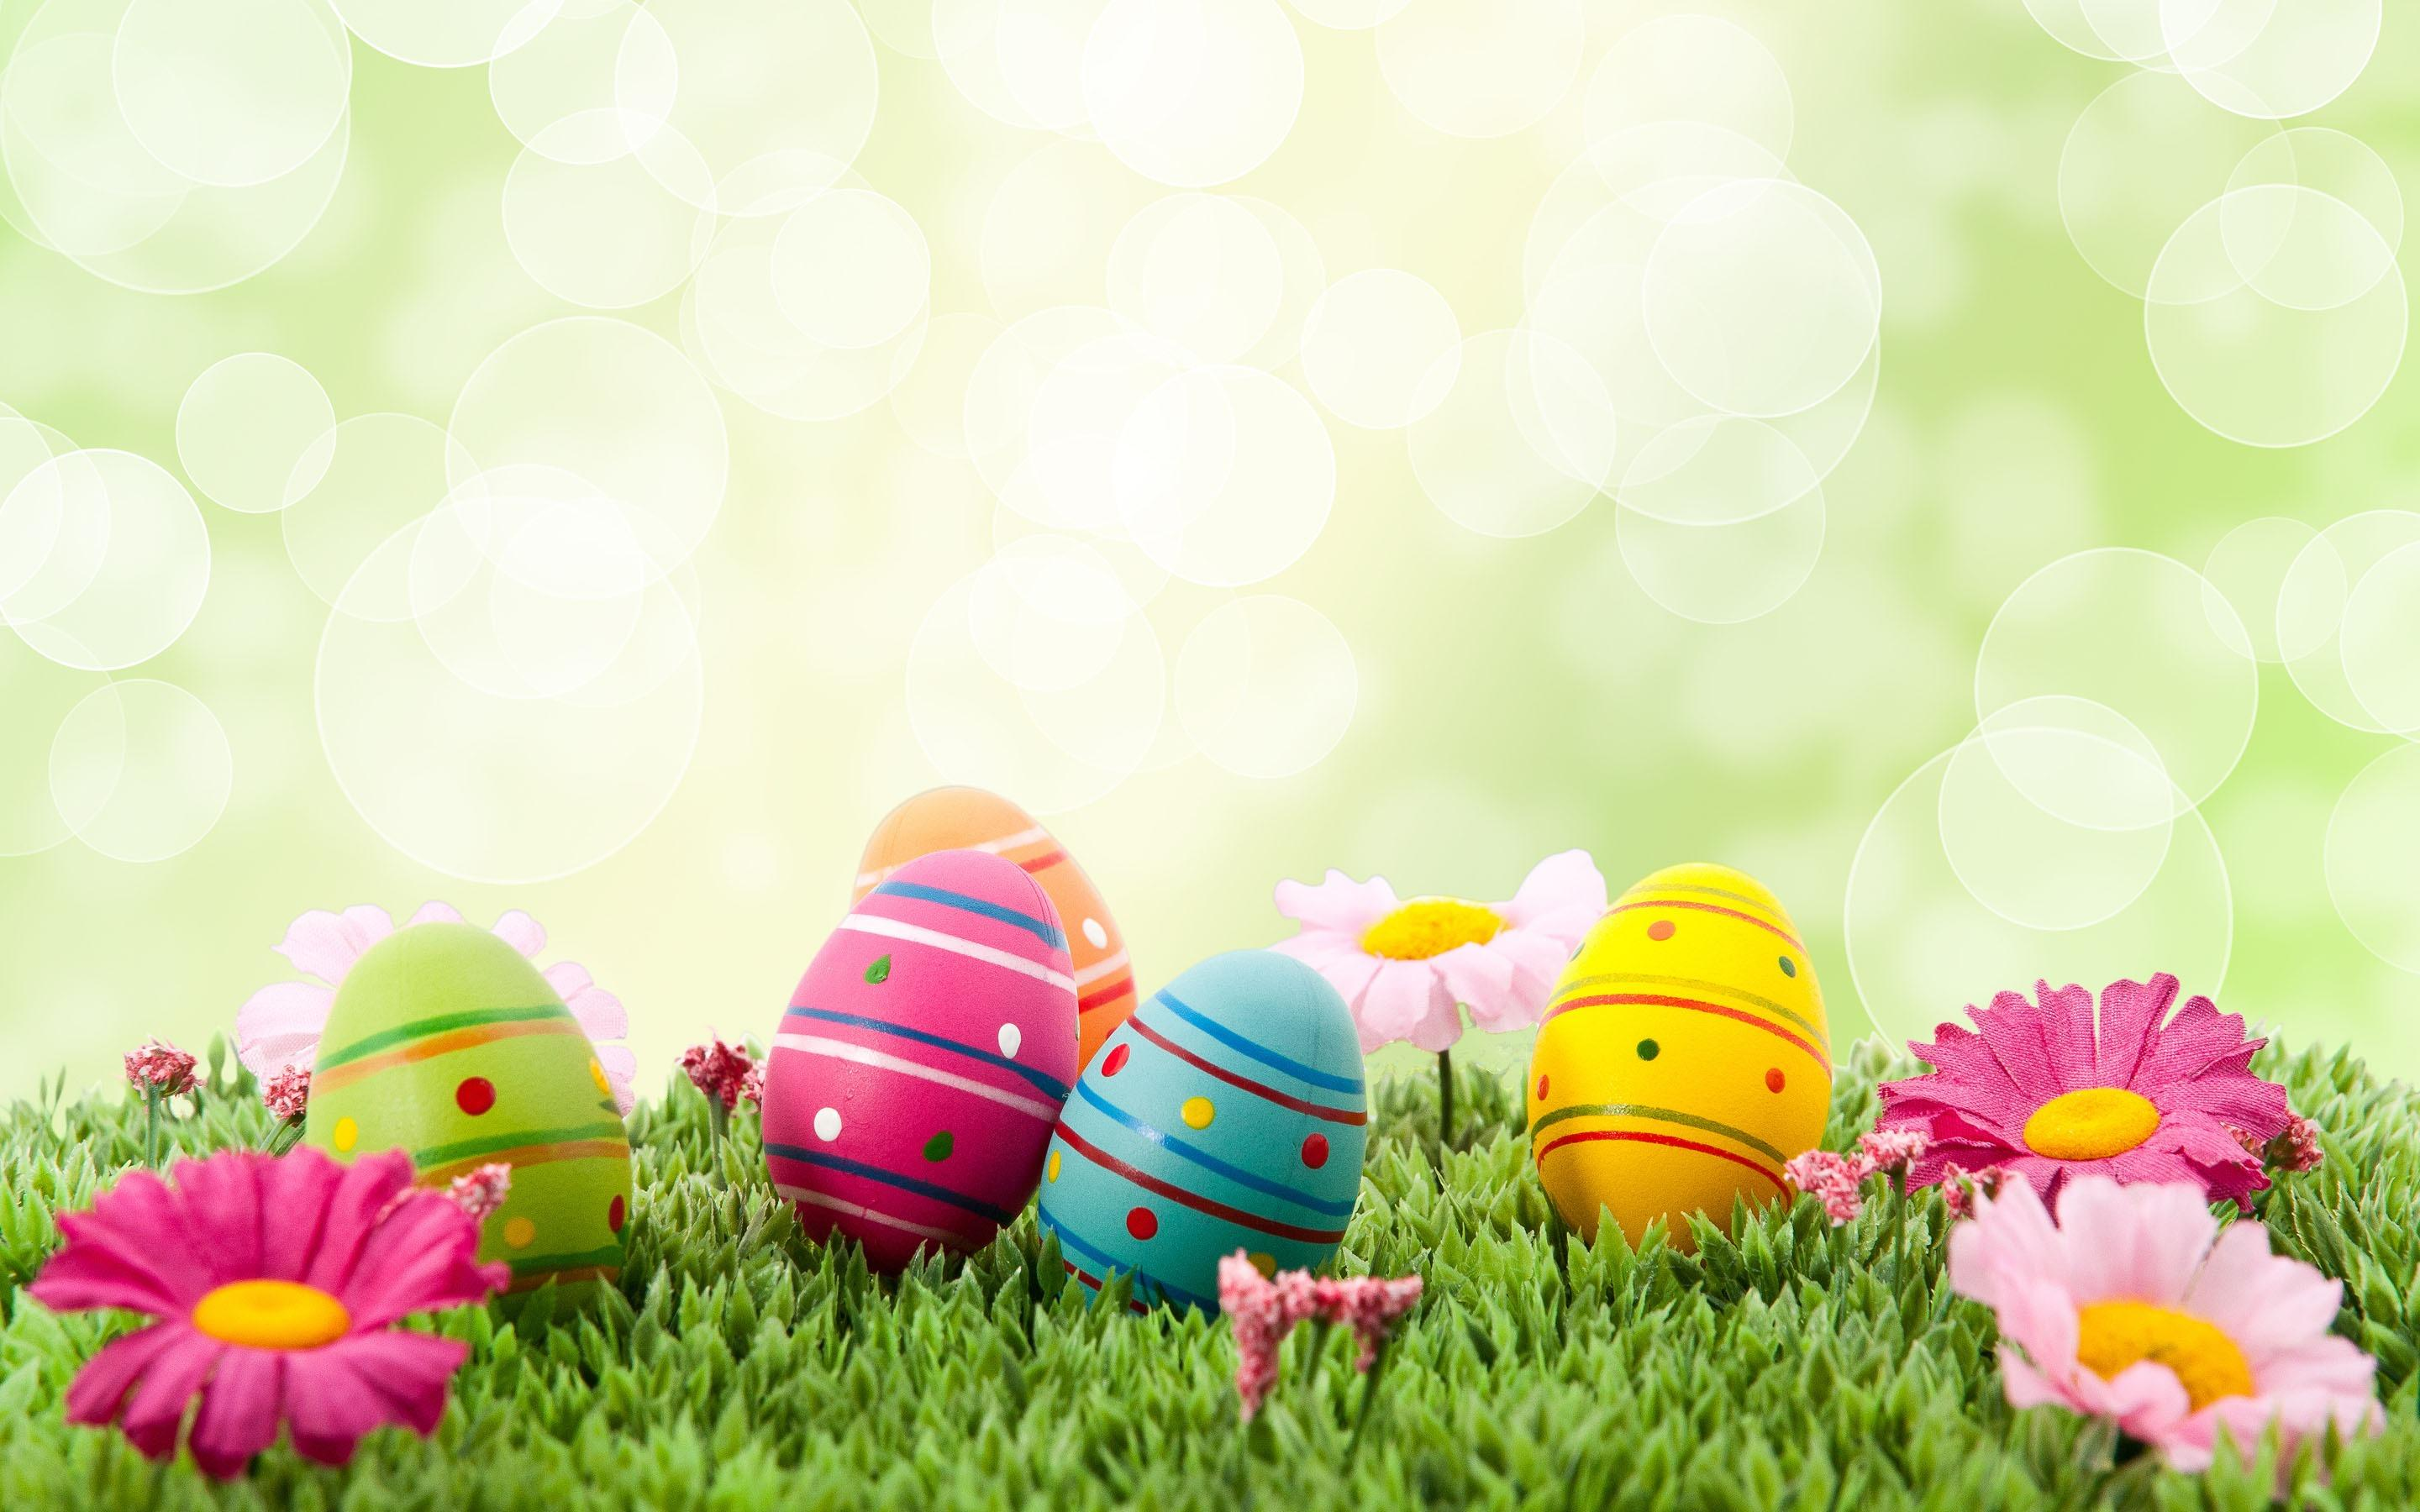 Best 60+ Easter Wallpaper on HipWallpaper | Easter Wallpaper, Happy ...